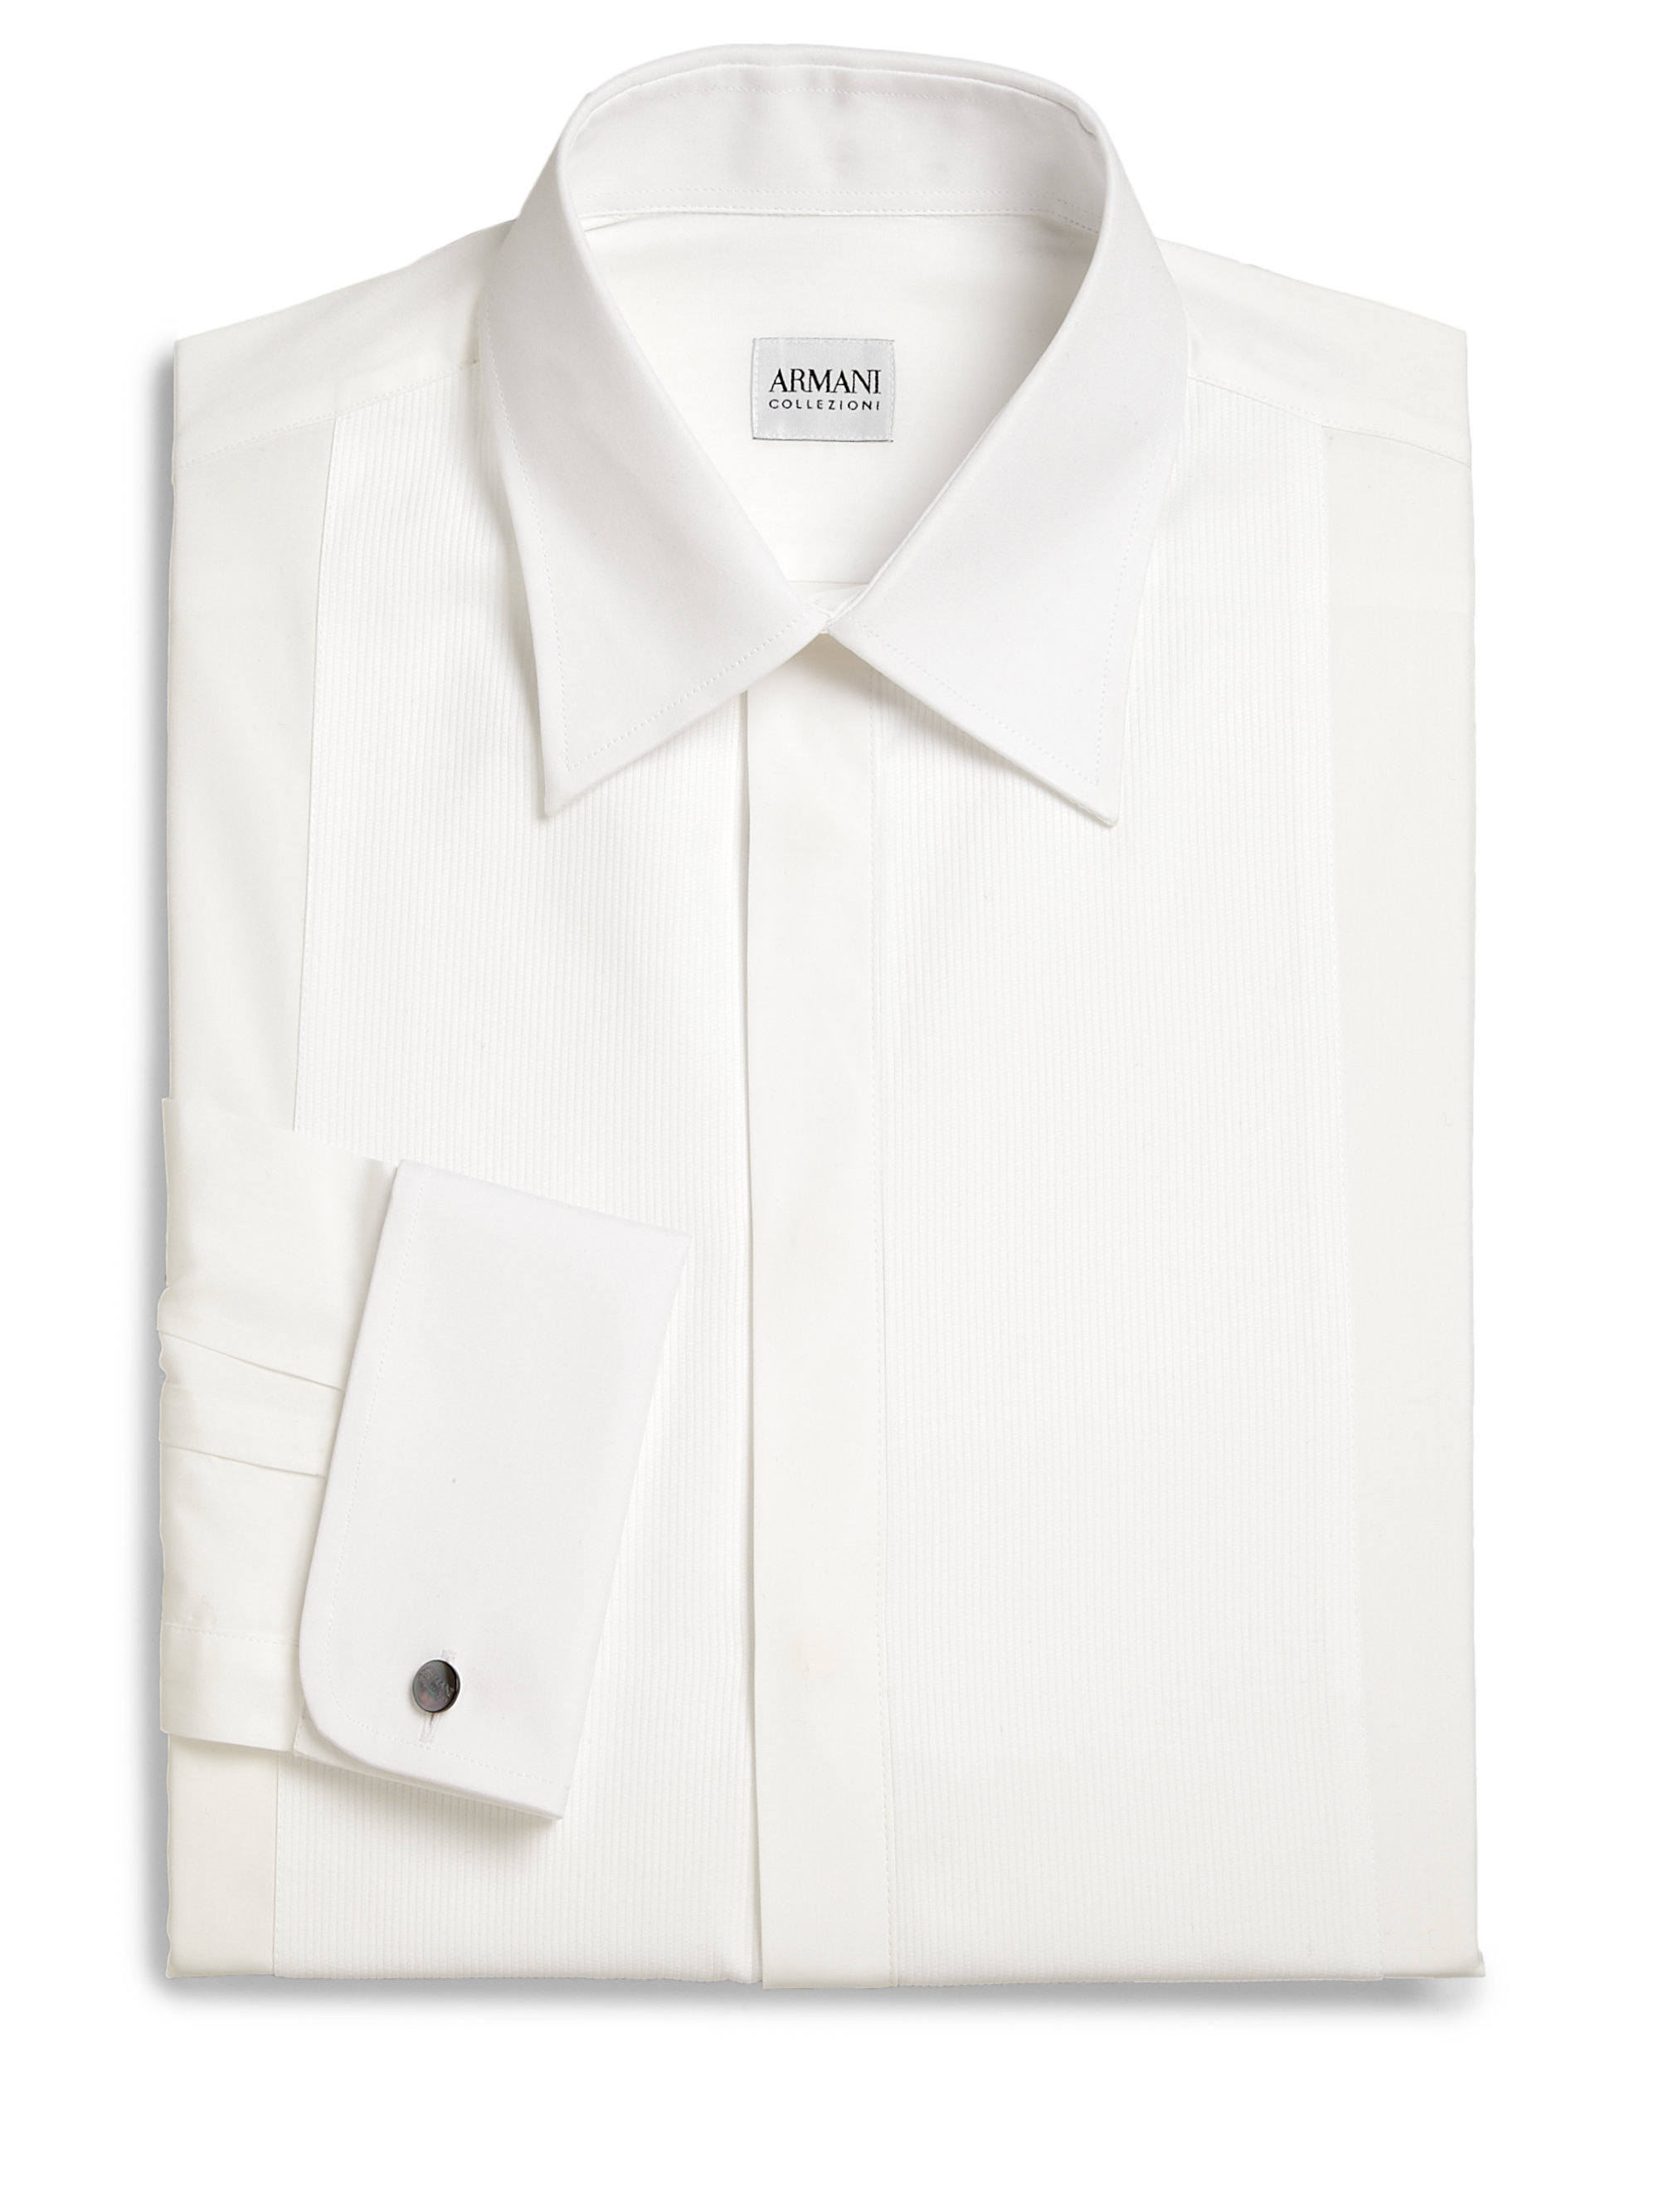 Armani french cuff tuxedo shirt in white for men lyst for Mens white french cuff shirt